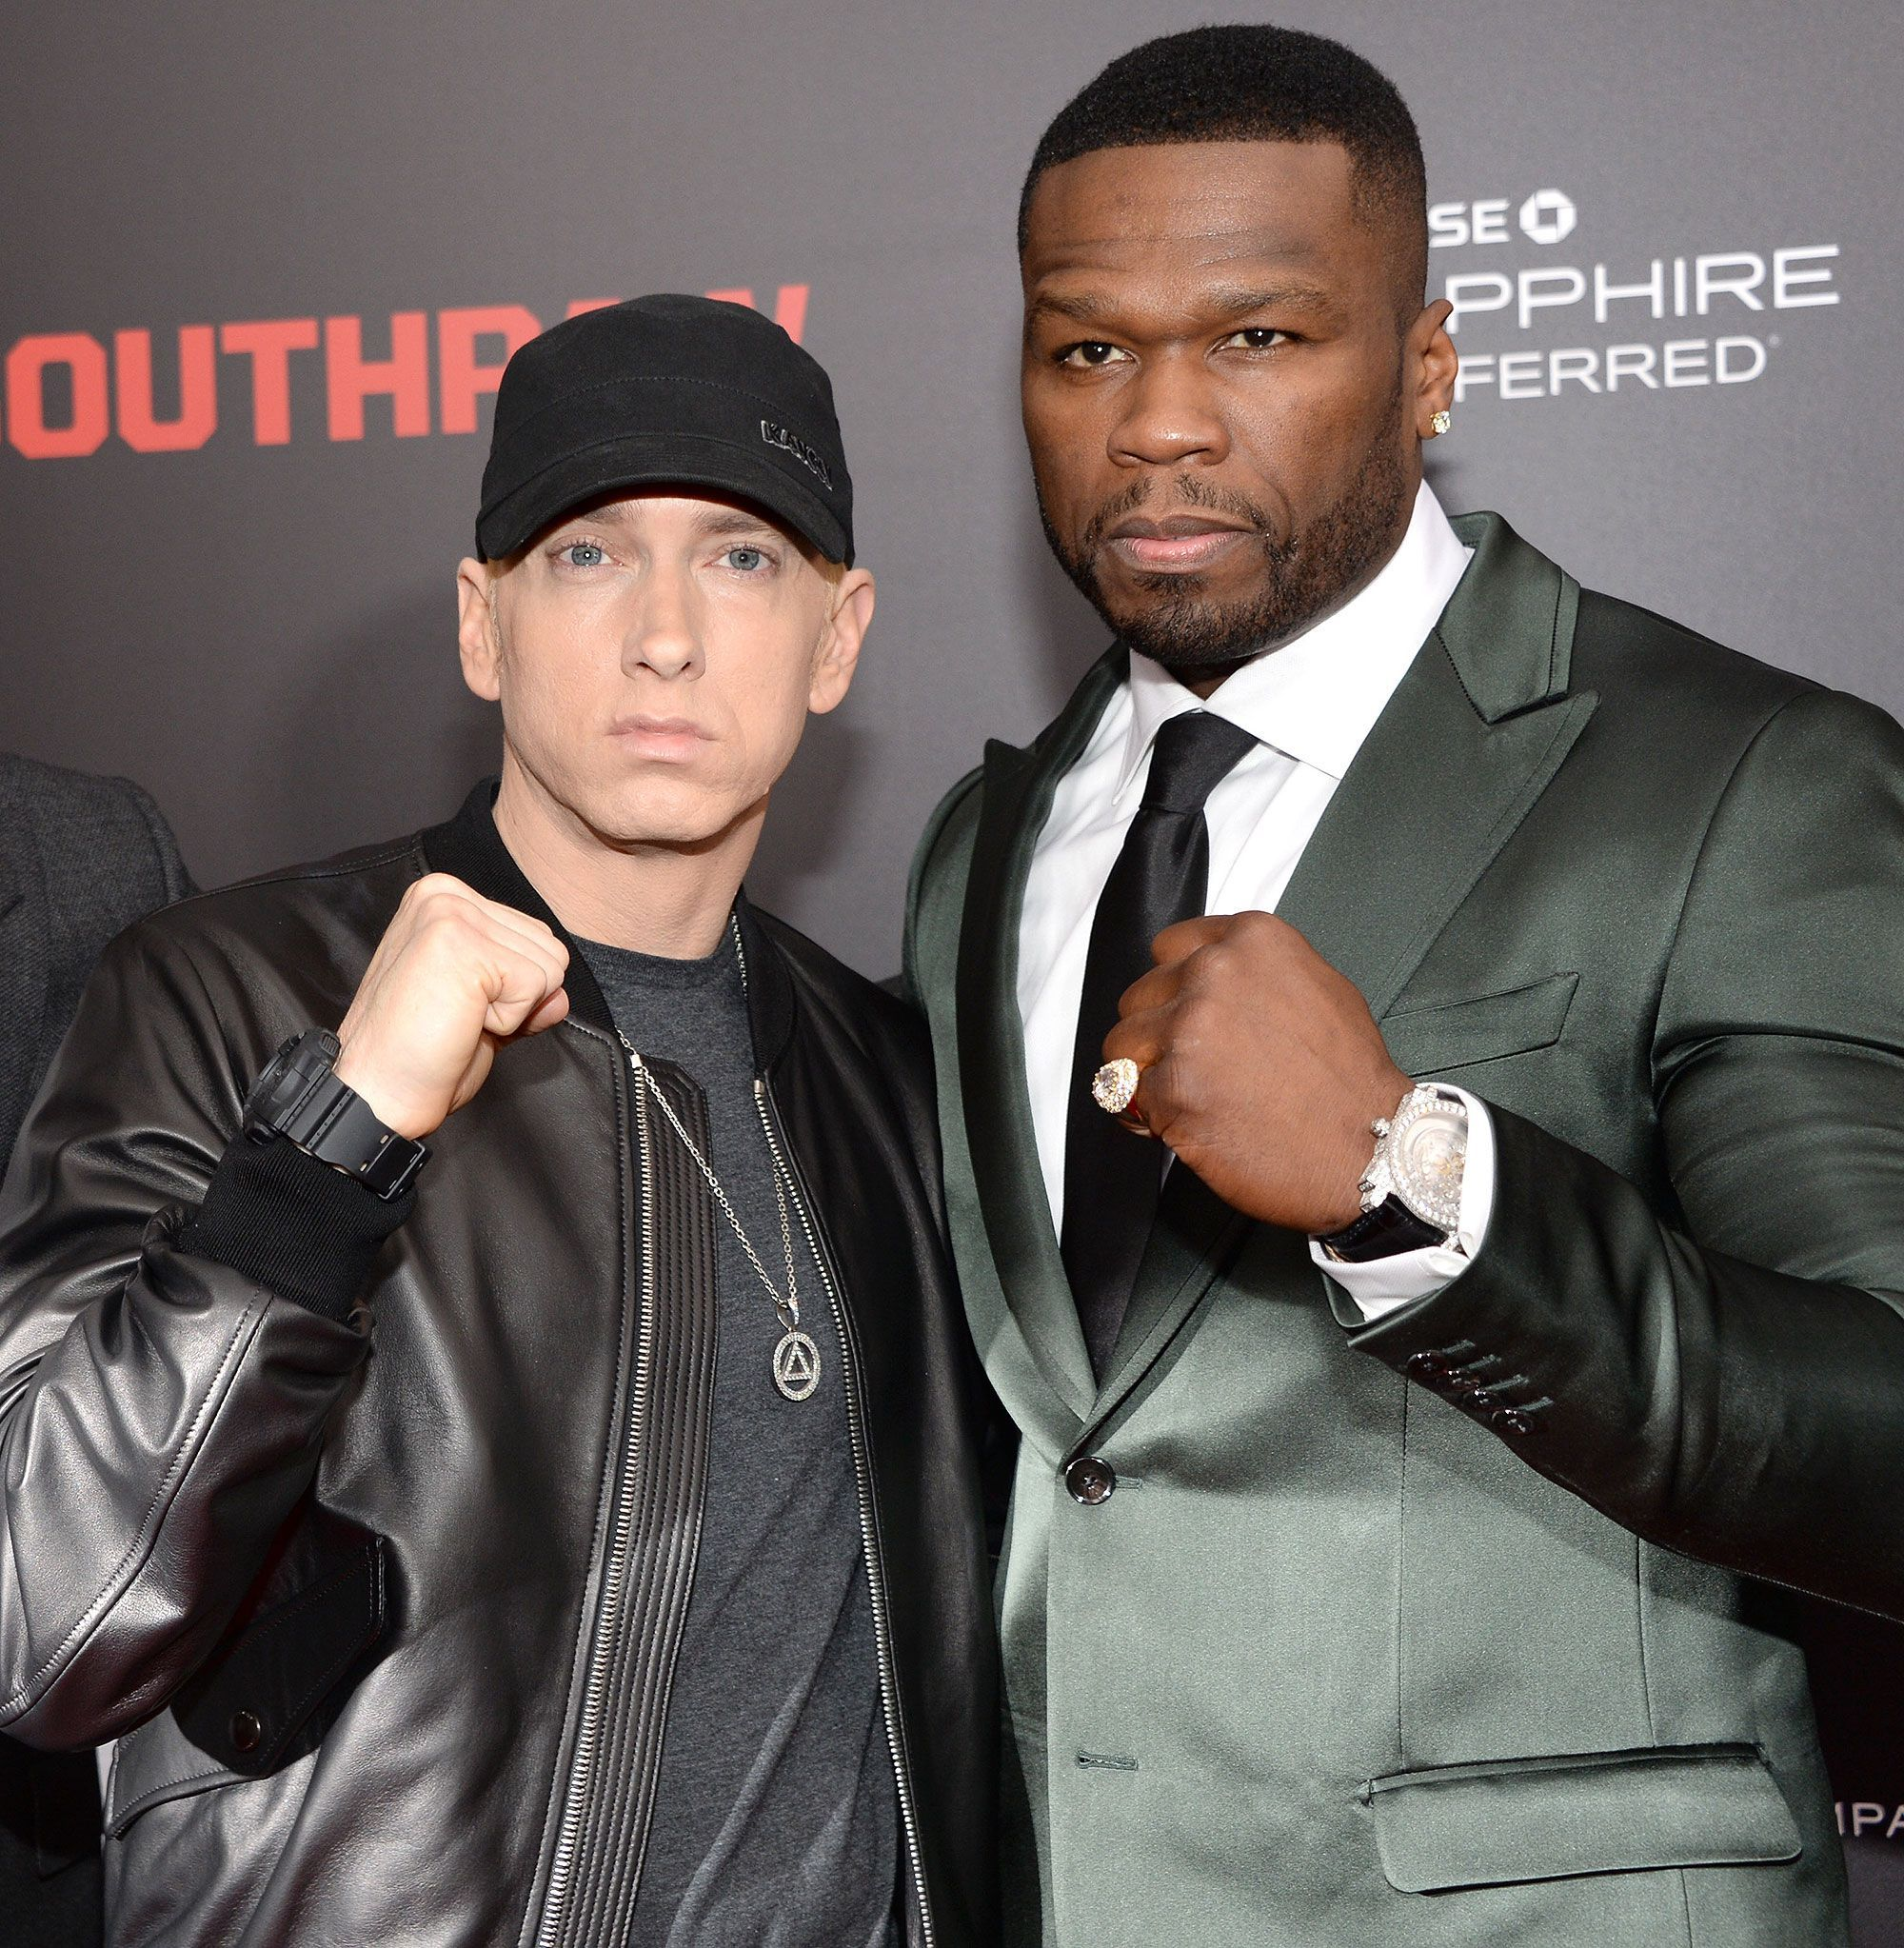 Eminem Raps 50 Cent S 8 Mile Verse For His Friend S Birthday As He